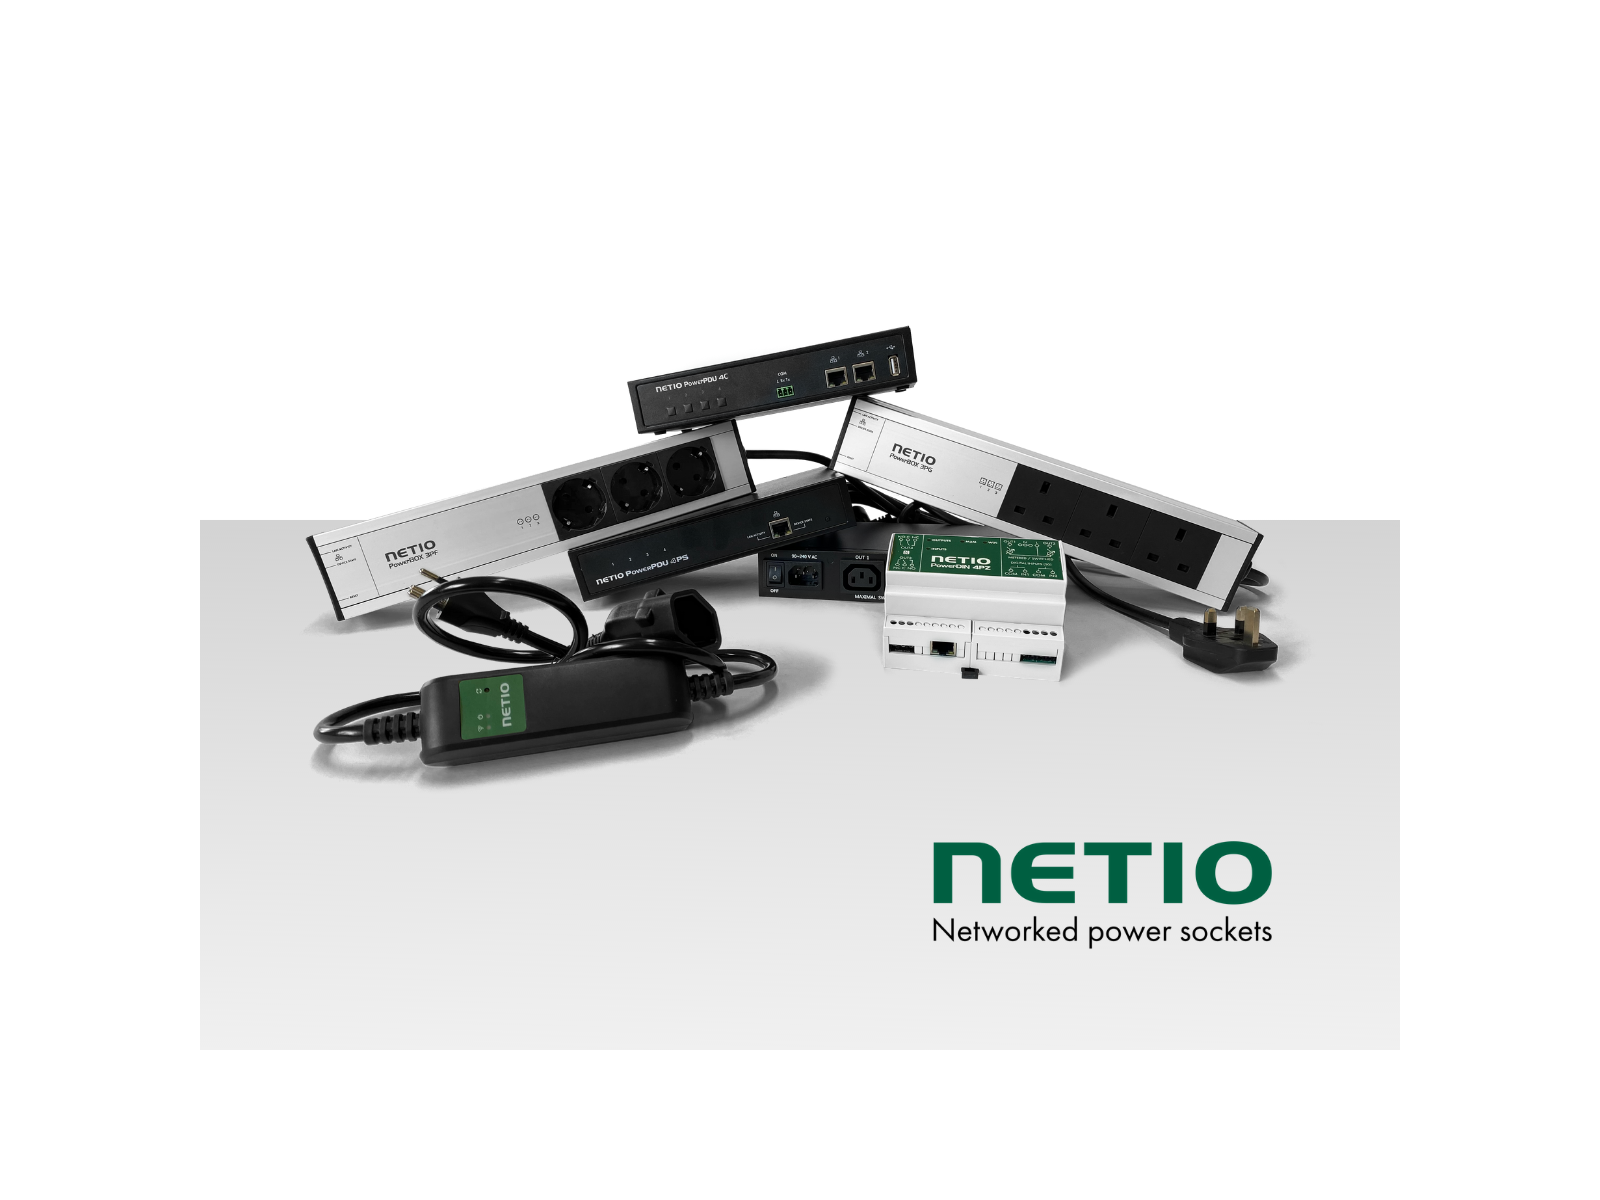 NETIO-products-smart-power-sockets-all-devices-remote-control